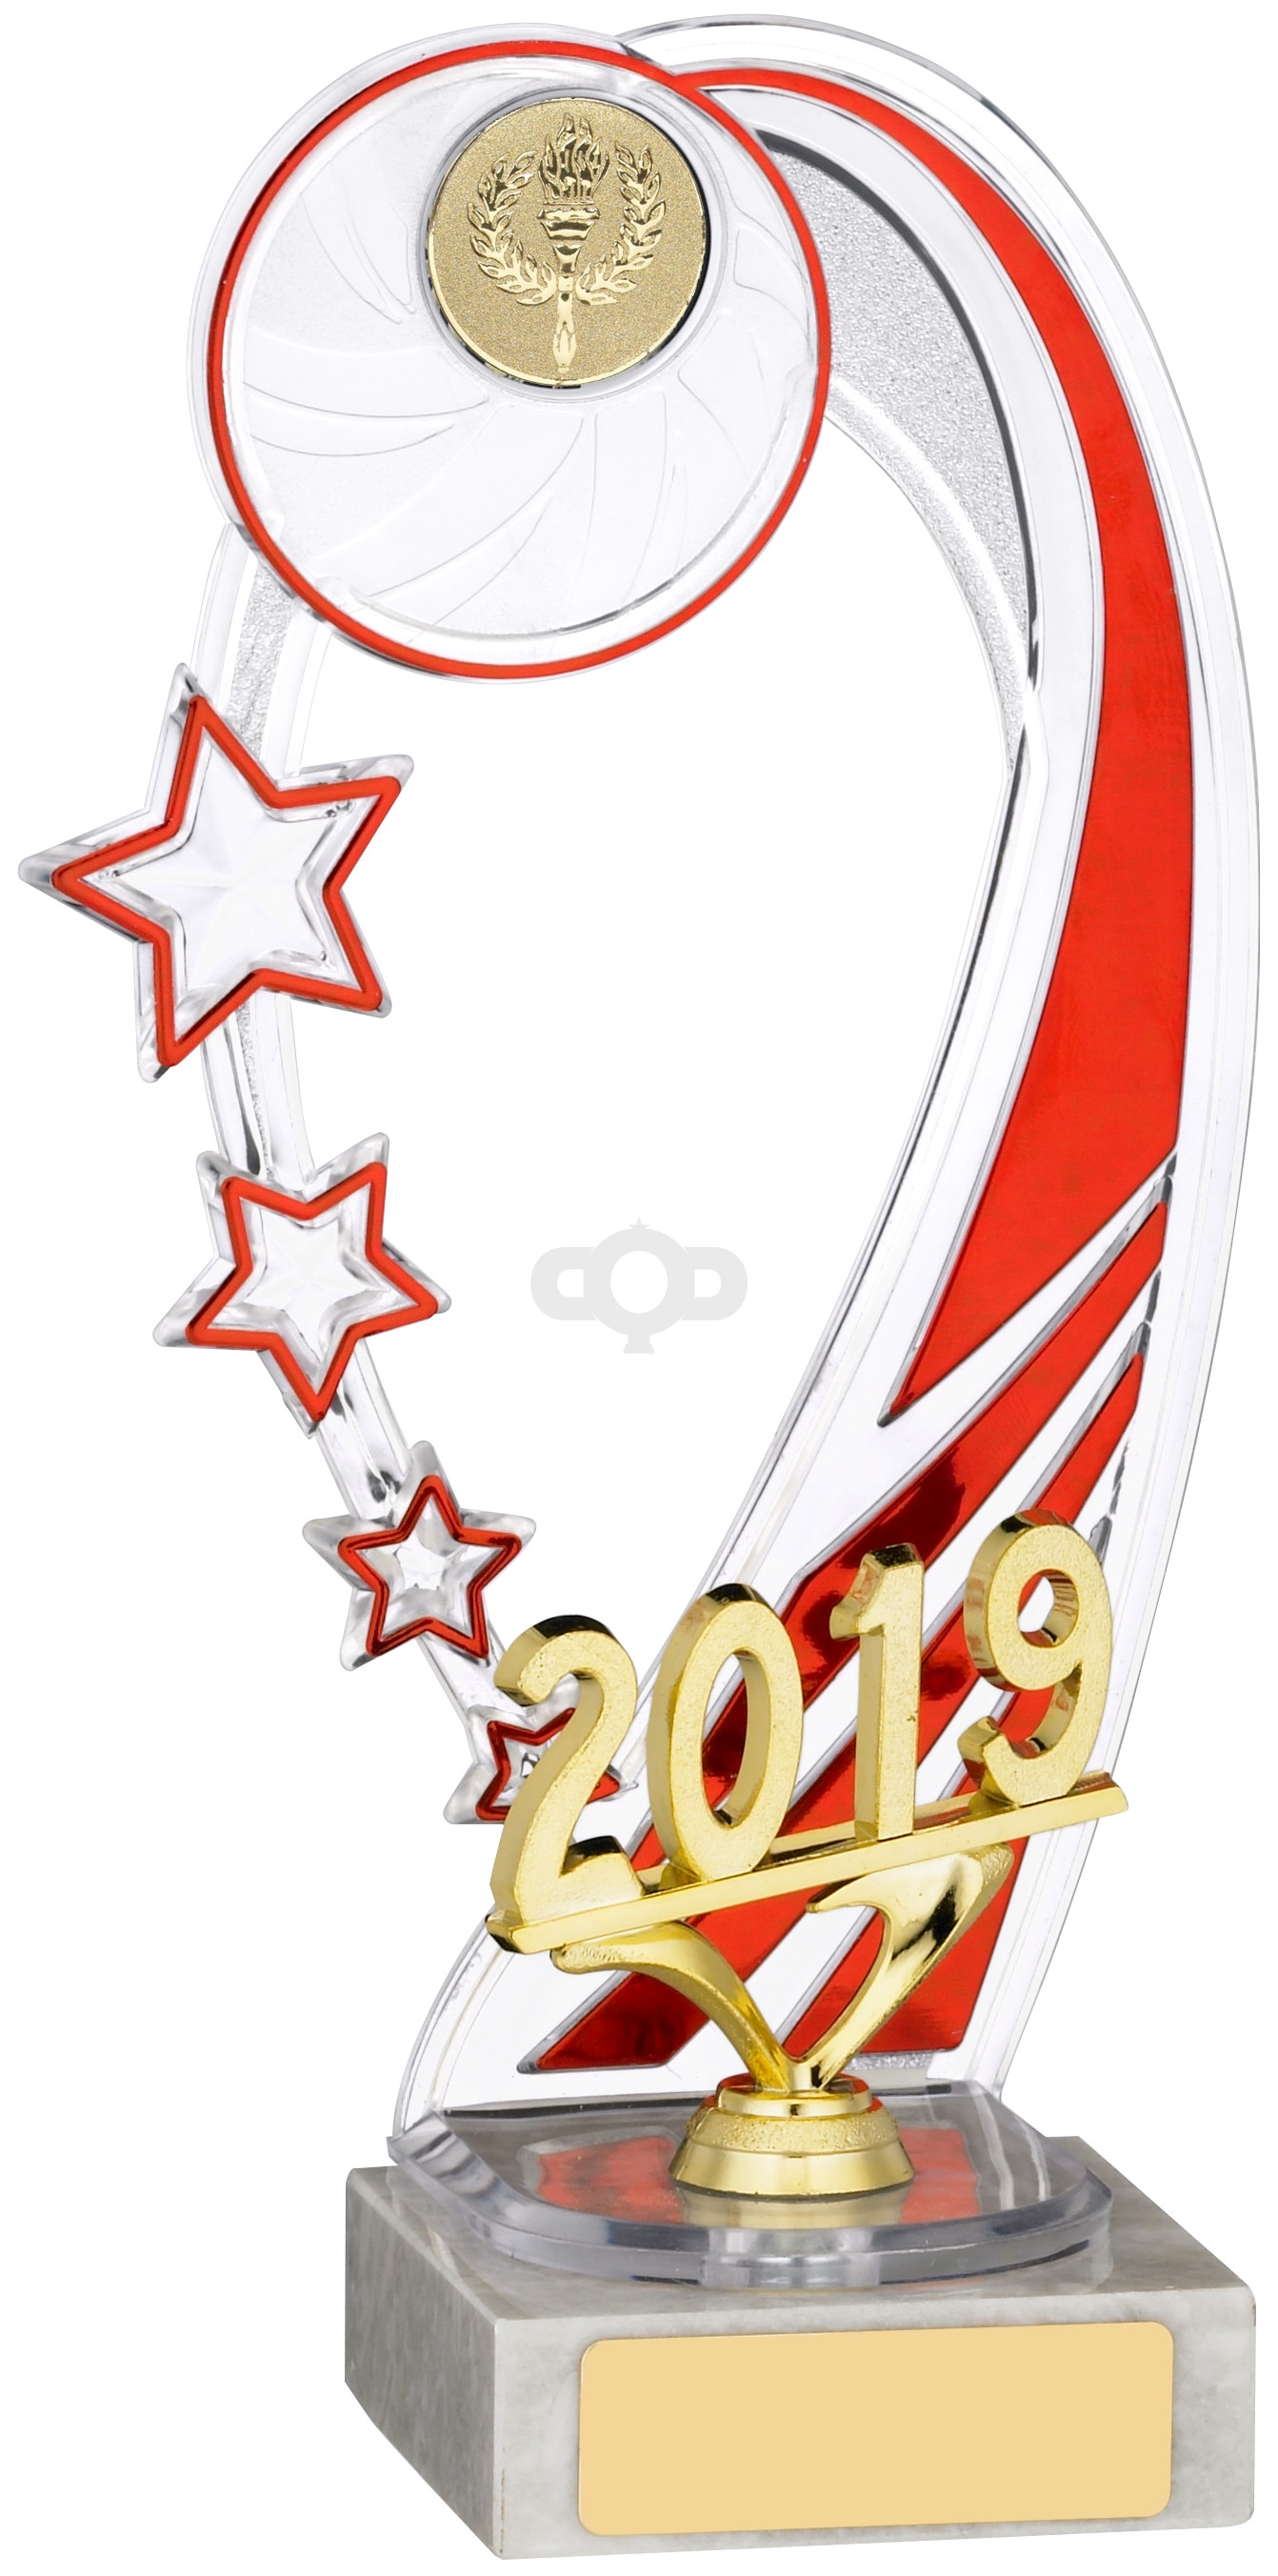 2019 Red Backdrop Trophy